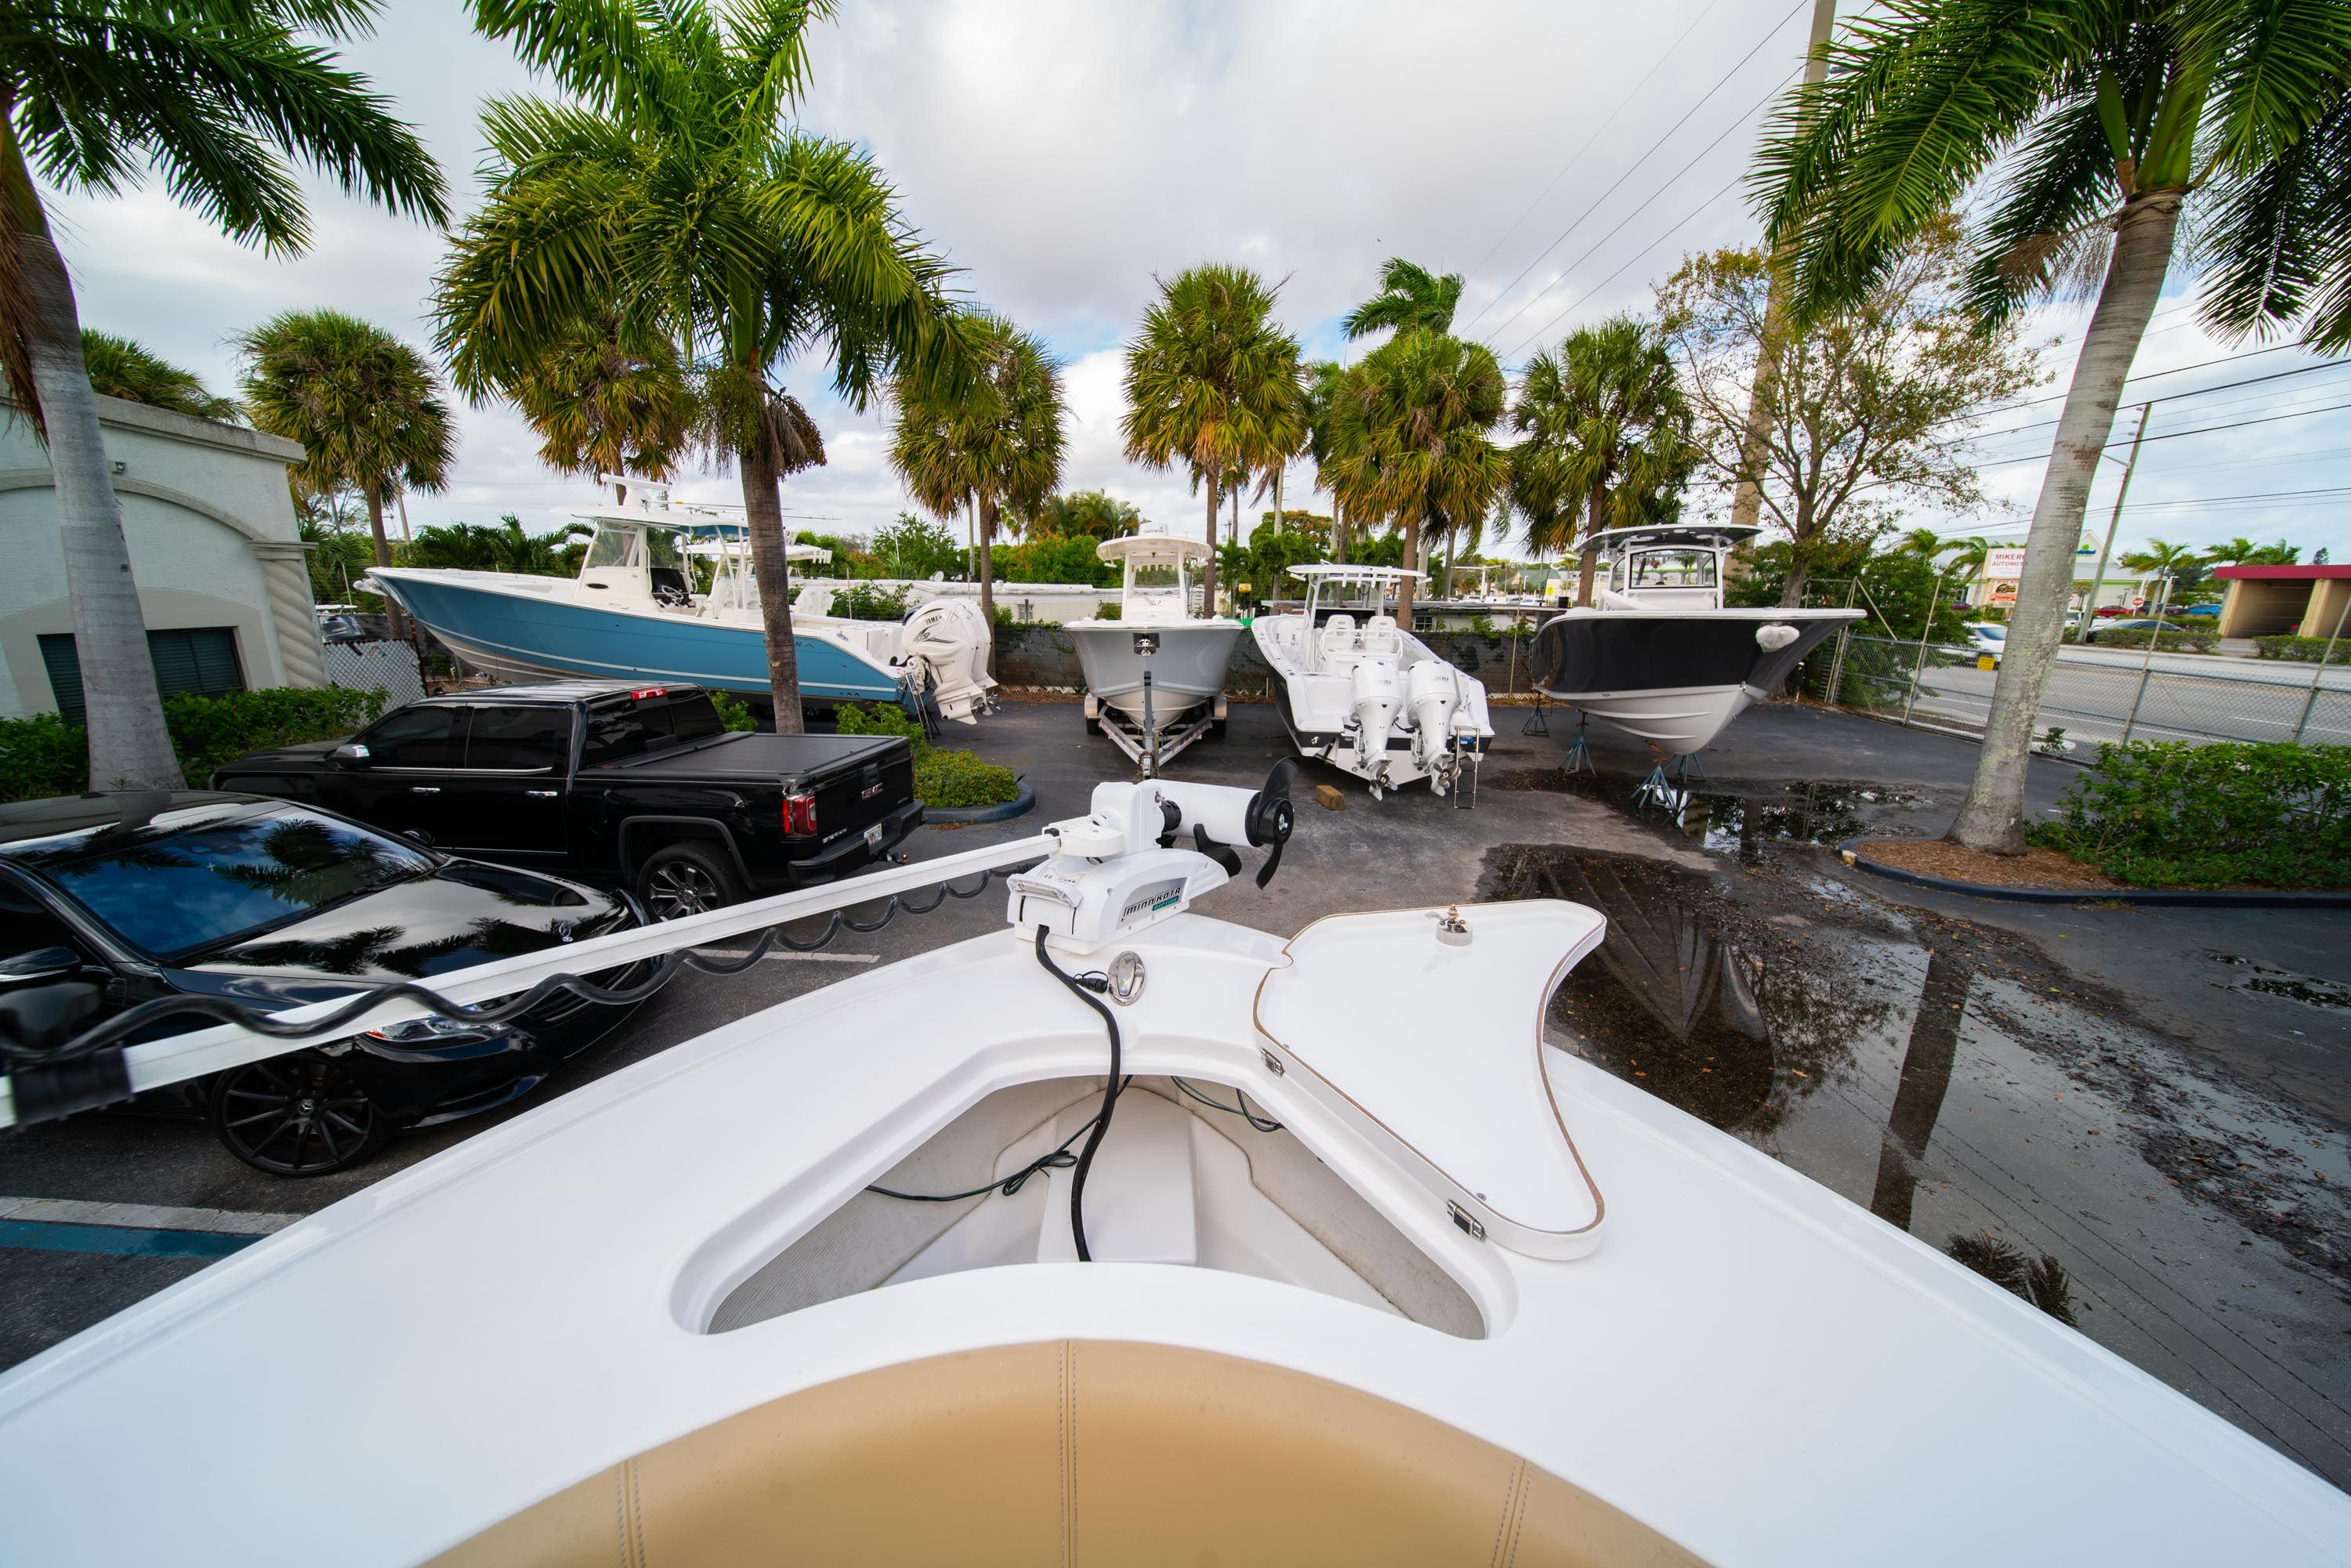 Thumbnail 37 for Used 2018 Sportsman Open 232 Center Console boat for sale in West Palm Beach, FL